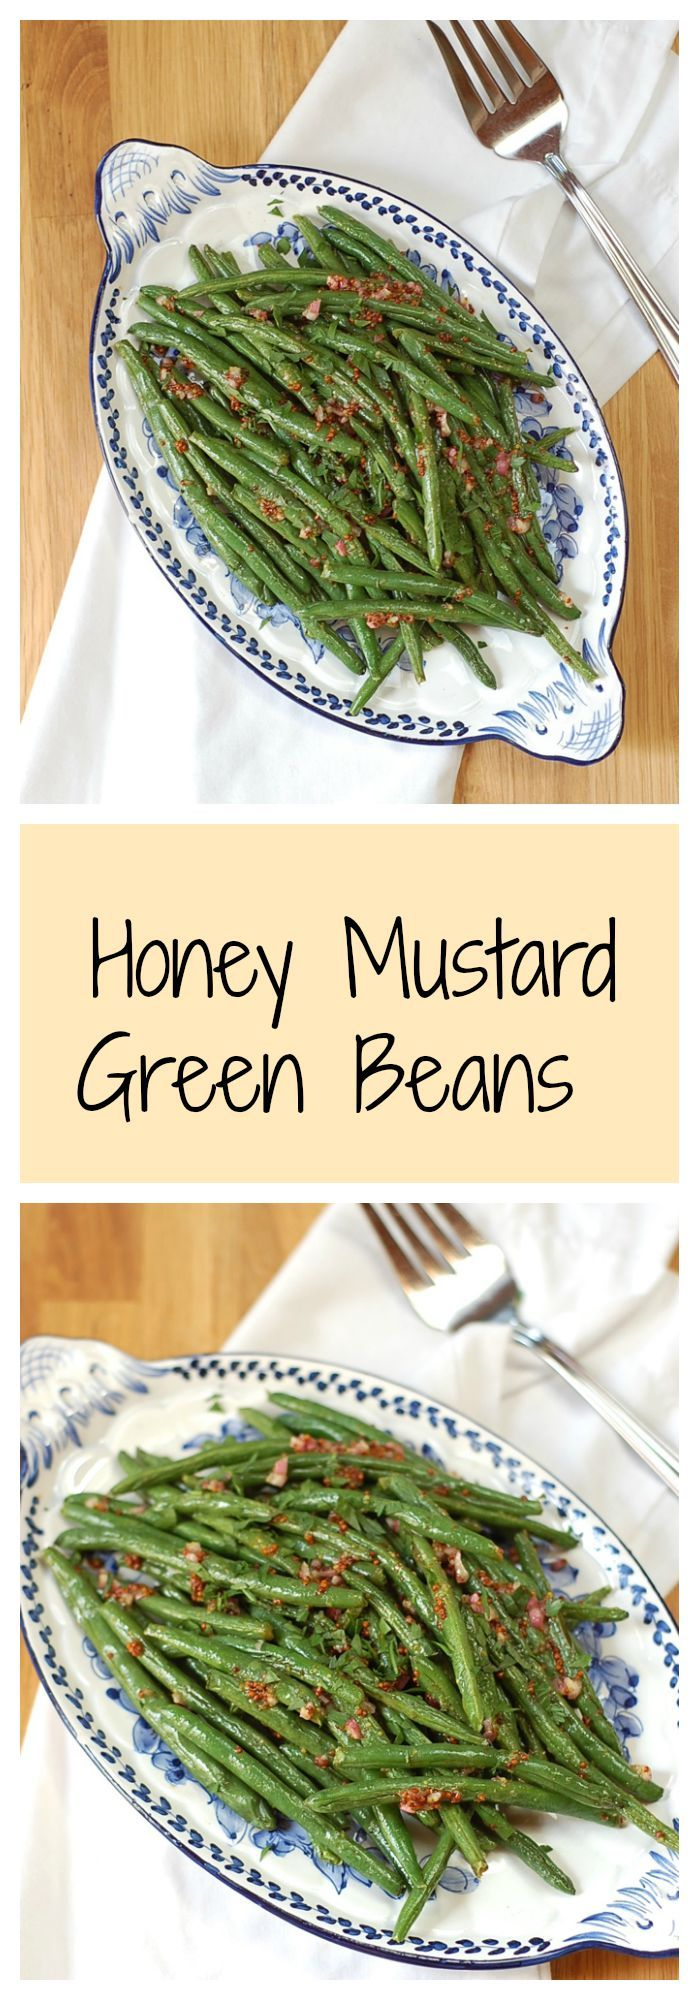 An easy, quick recipe for roasted honey mustard green beans. A perfect weeknight side dish!